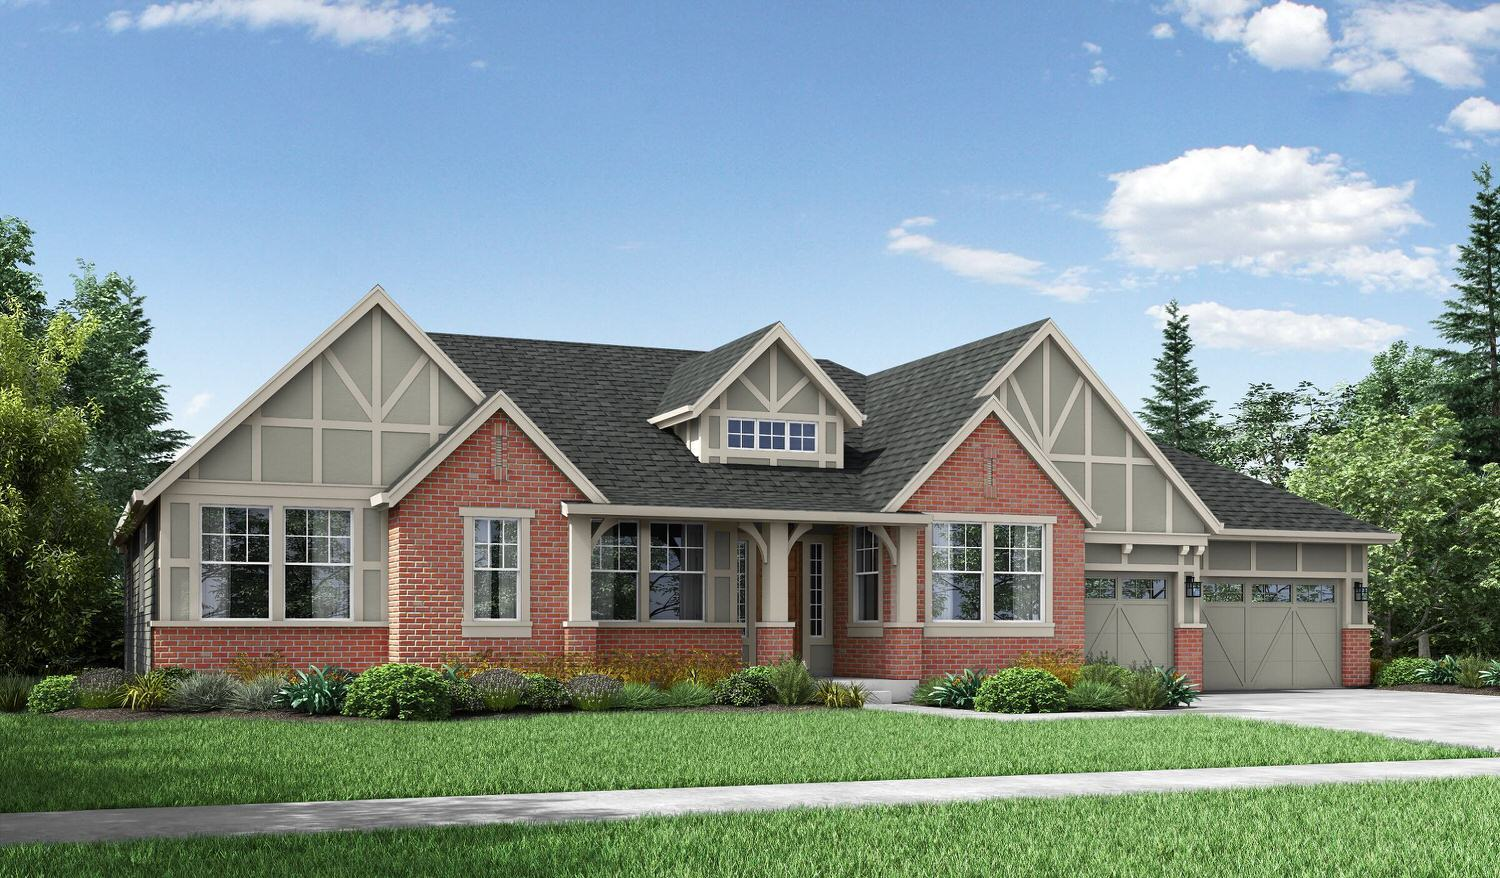 Single Family for Active at Polygon Estates At River Terrace - The Columbia Wlh 16549 Sw Deschutes Ln Beaverton, Oregon 97007 United States